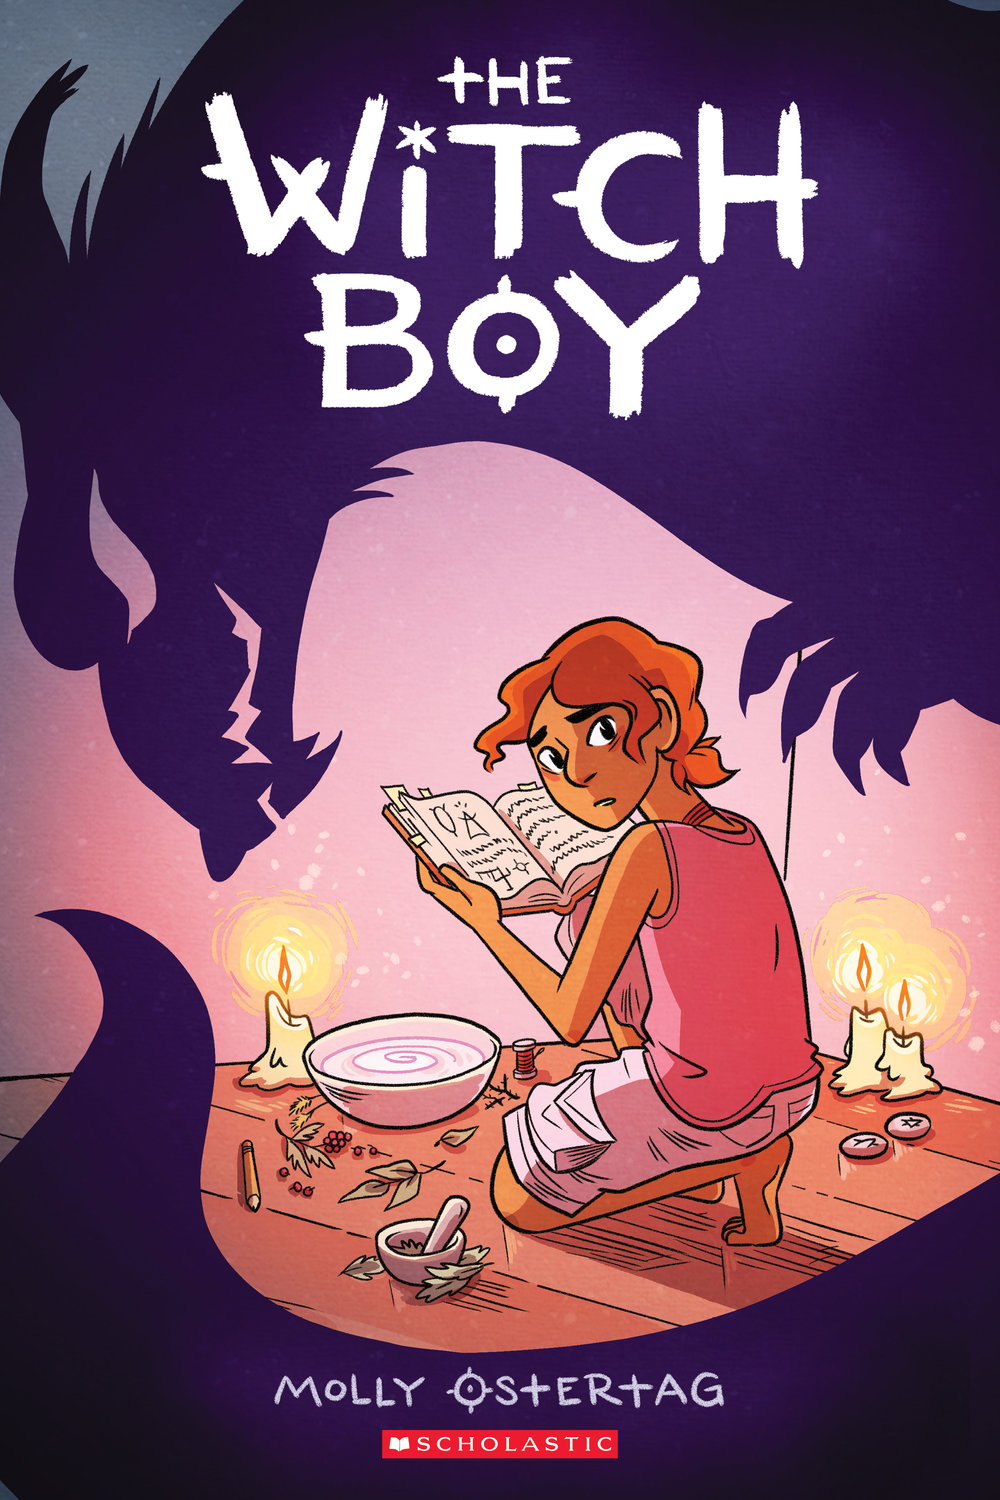 THE WITCH BOY final front cover.jpg